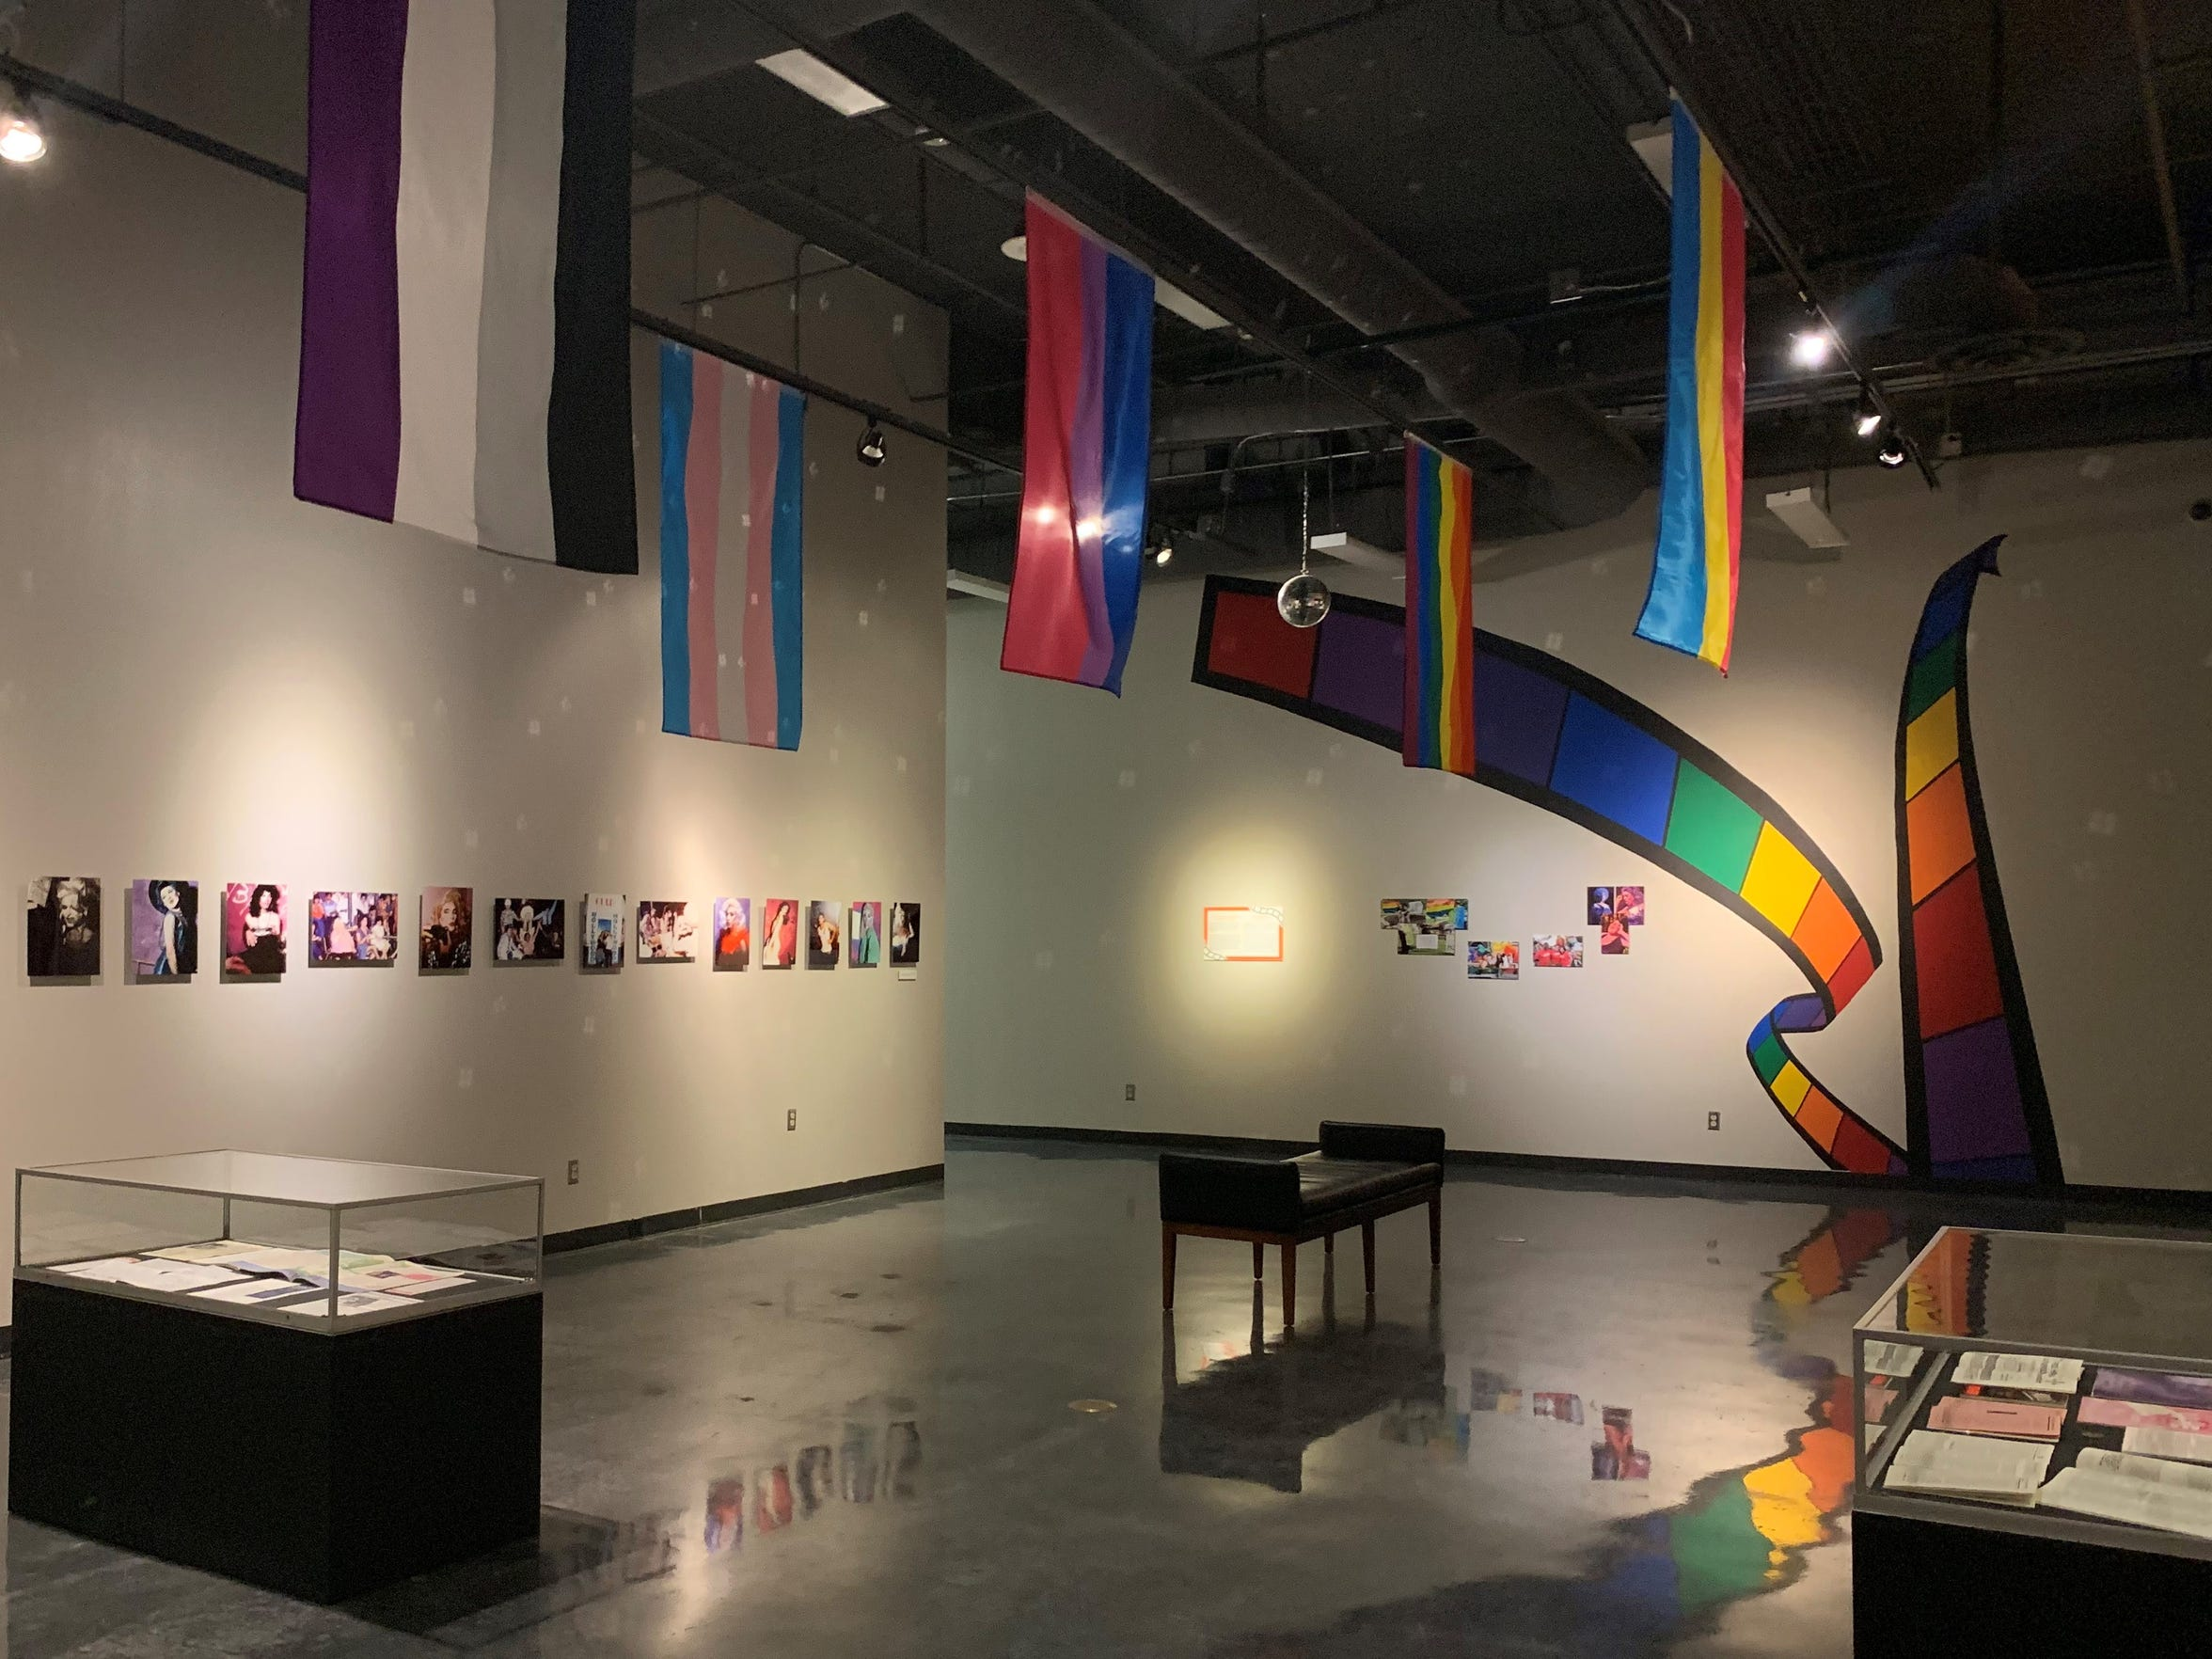 The Pride Cinema exhibit opened at the El Paso Museum of History June 1 and will run until Nov. 7.